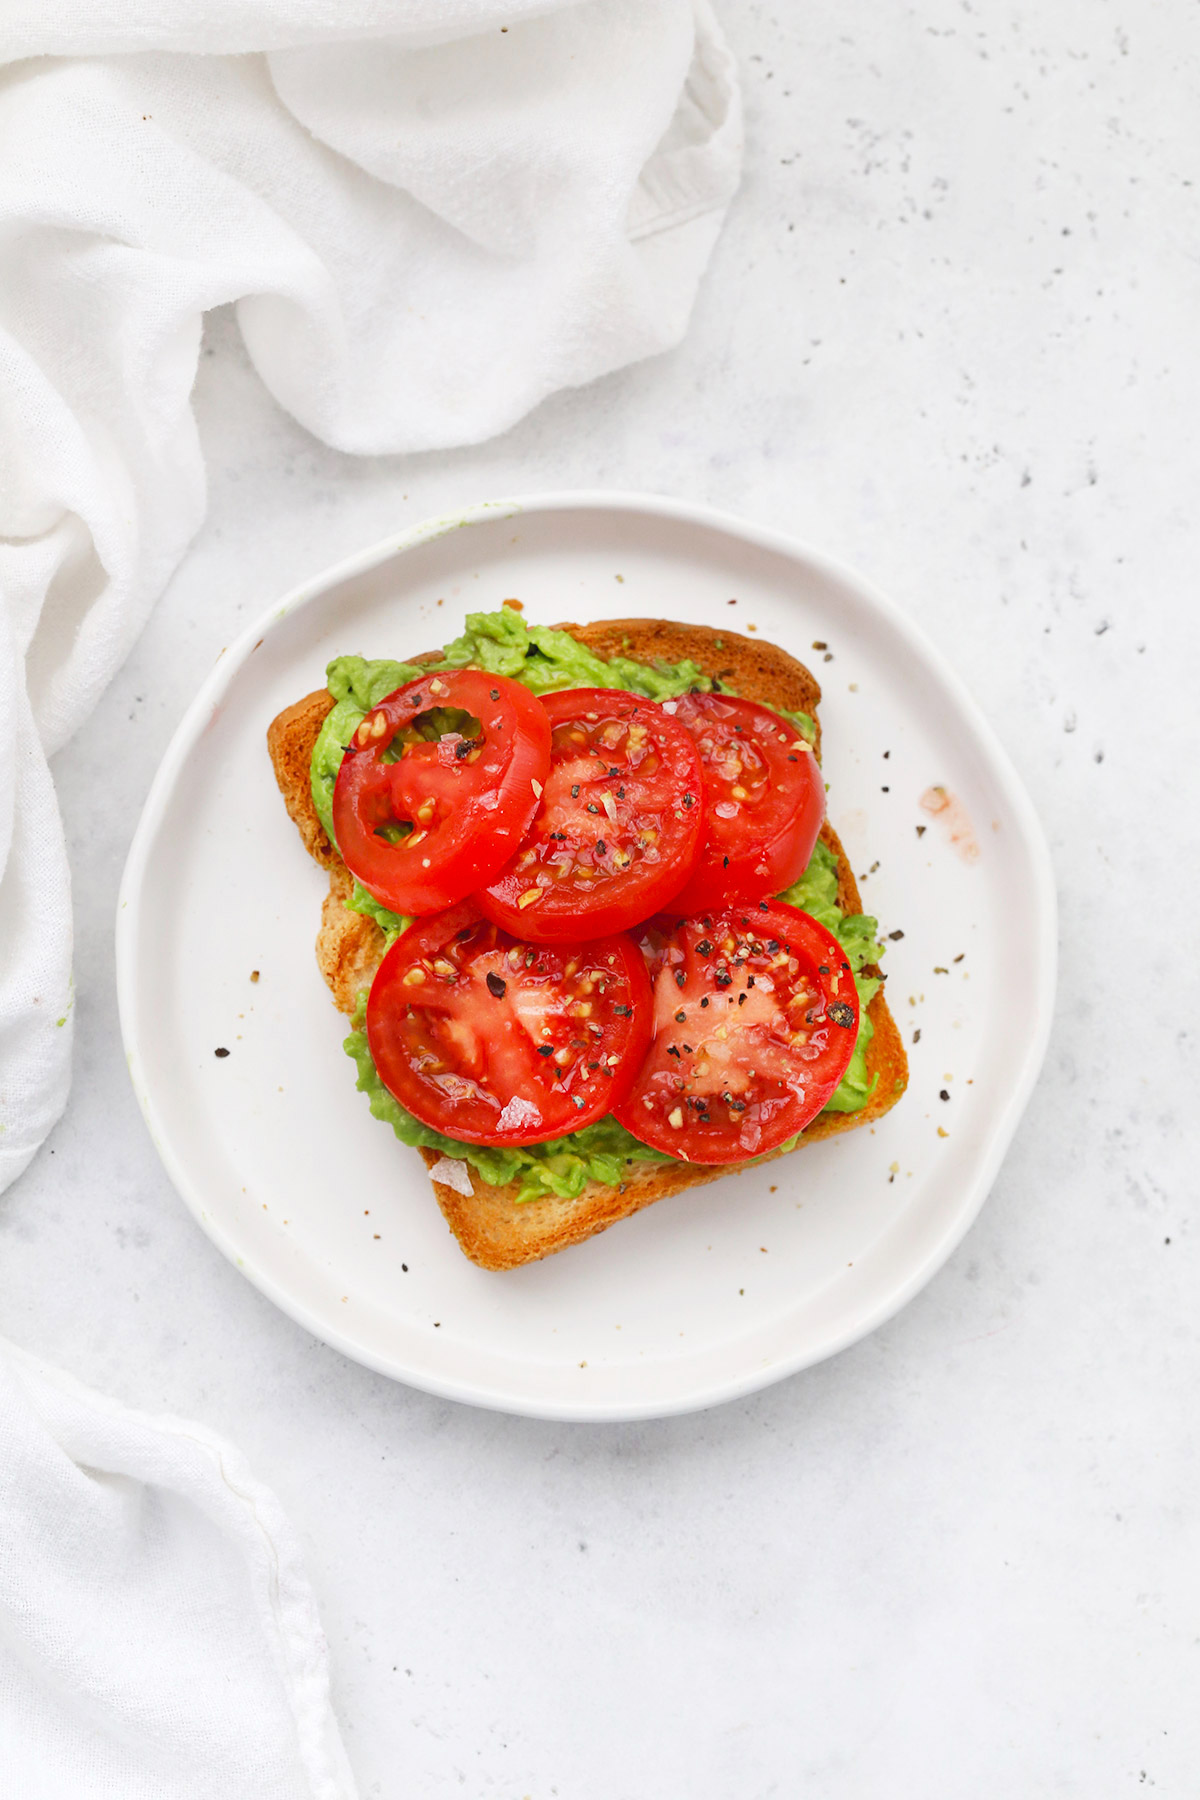 Gluten Free Avocado Toast with Tomatoes, and salt and pepper.